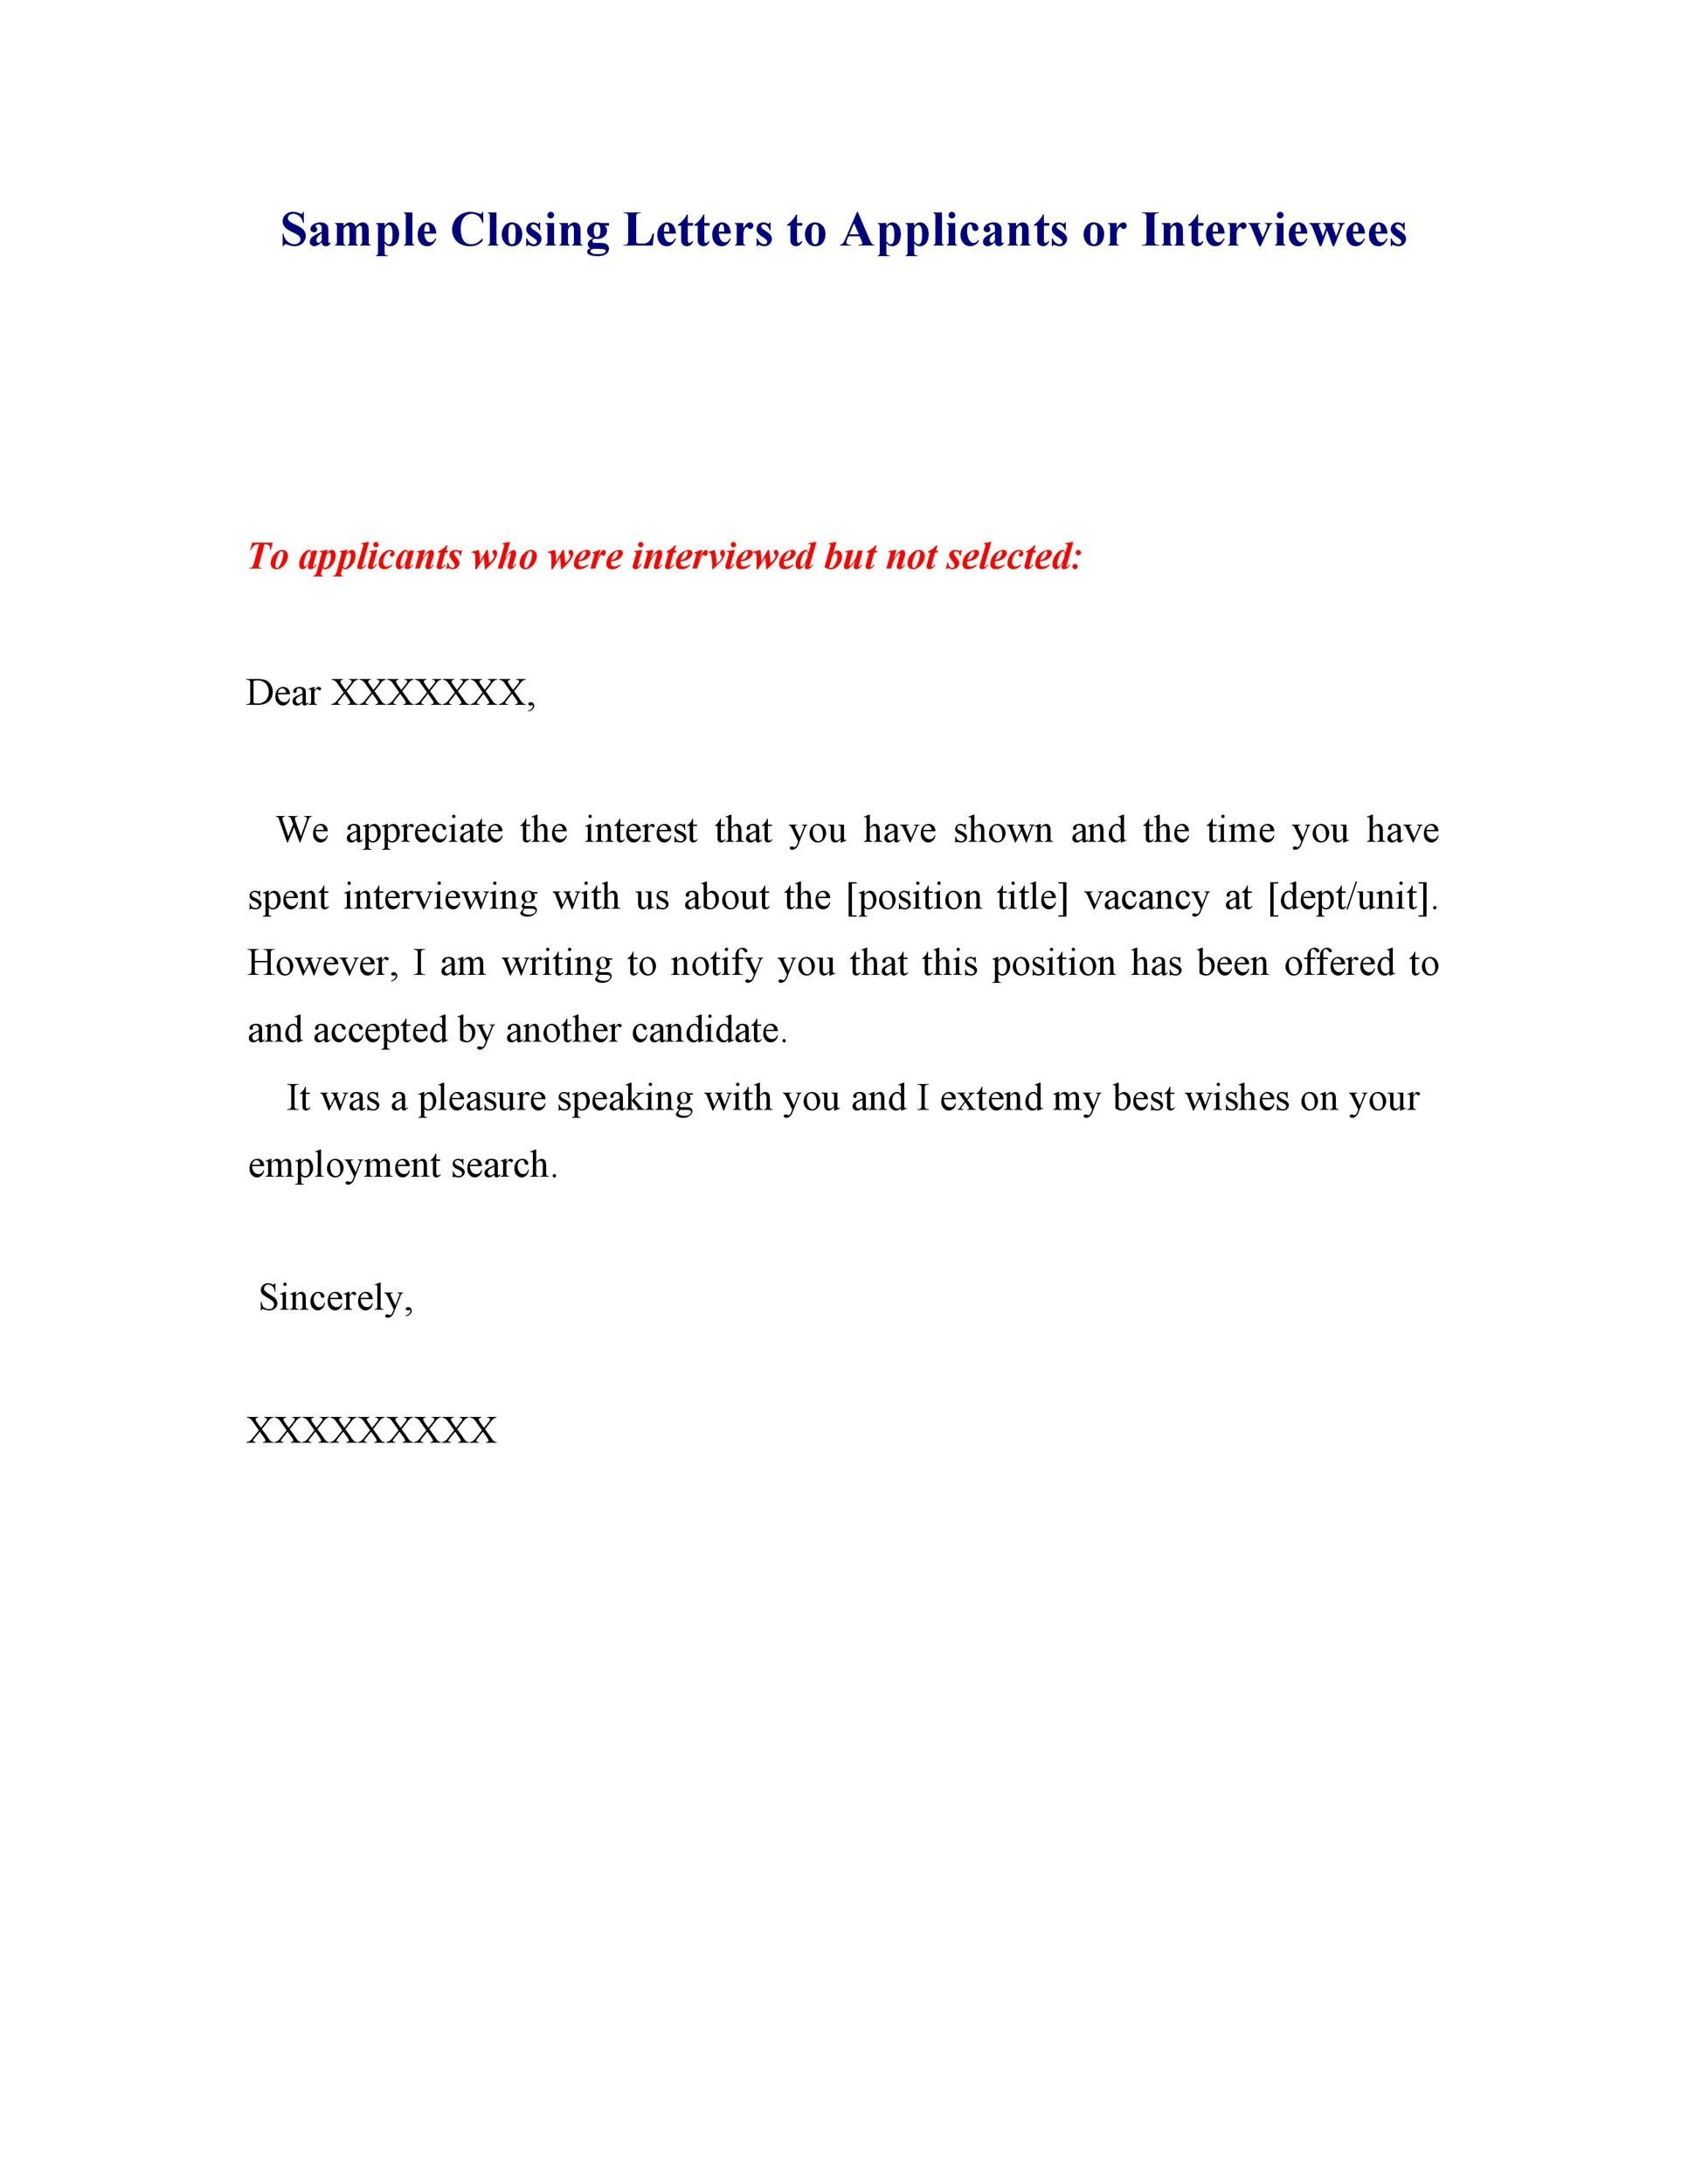 Rejection letter or email to applicants - Letter Sample